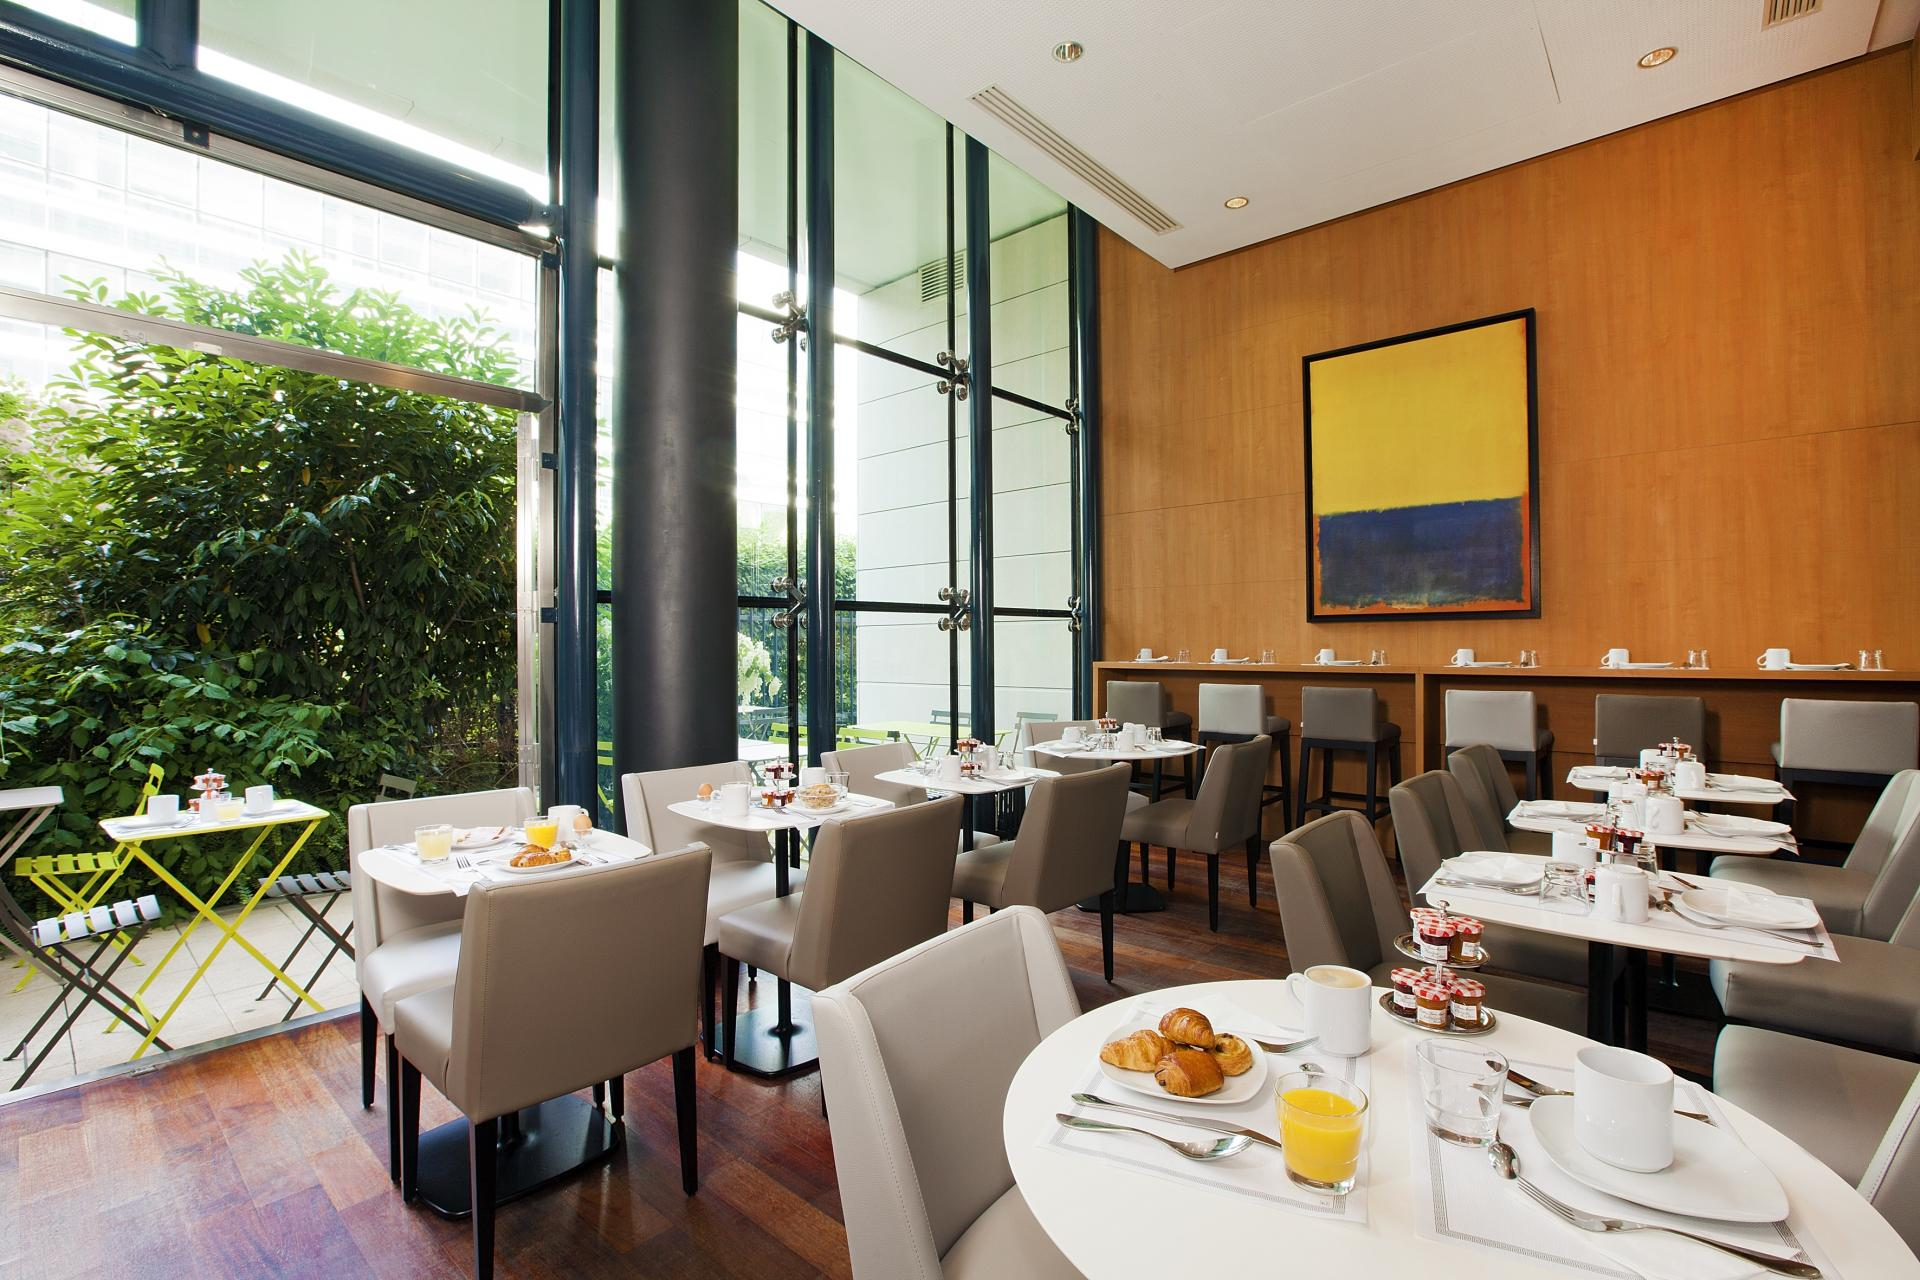 Restaurant at Residhome Bois Colombes Monceau Apartments - Citybase Apartments